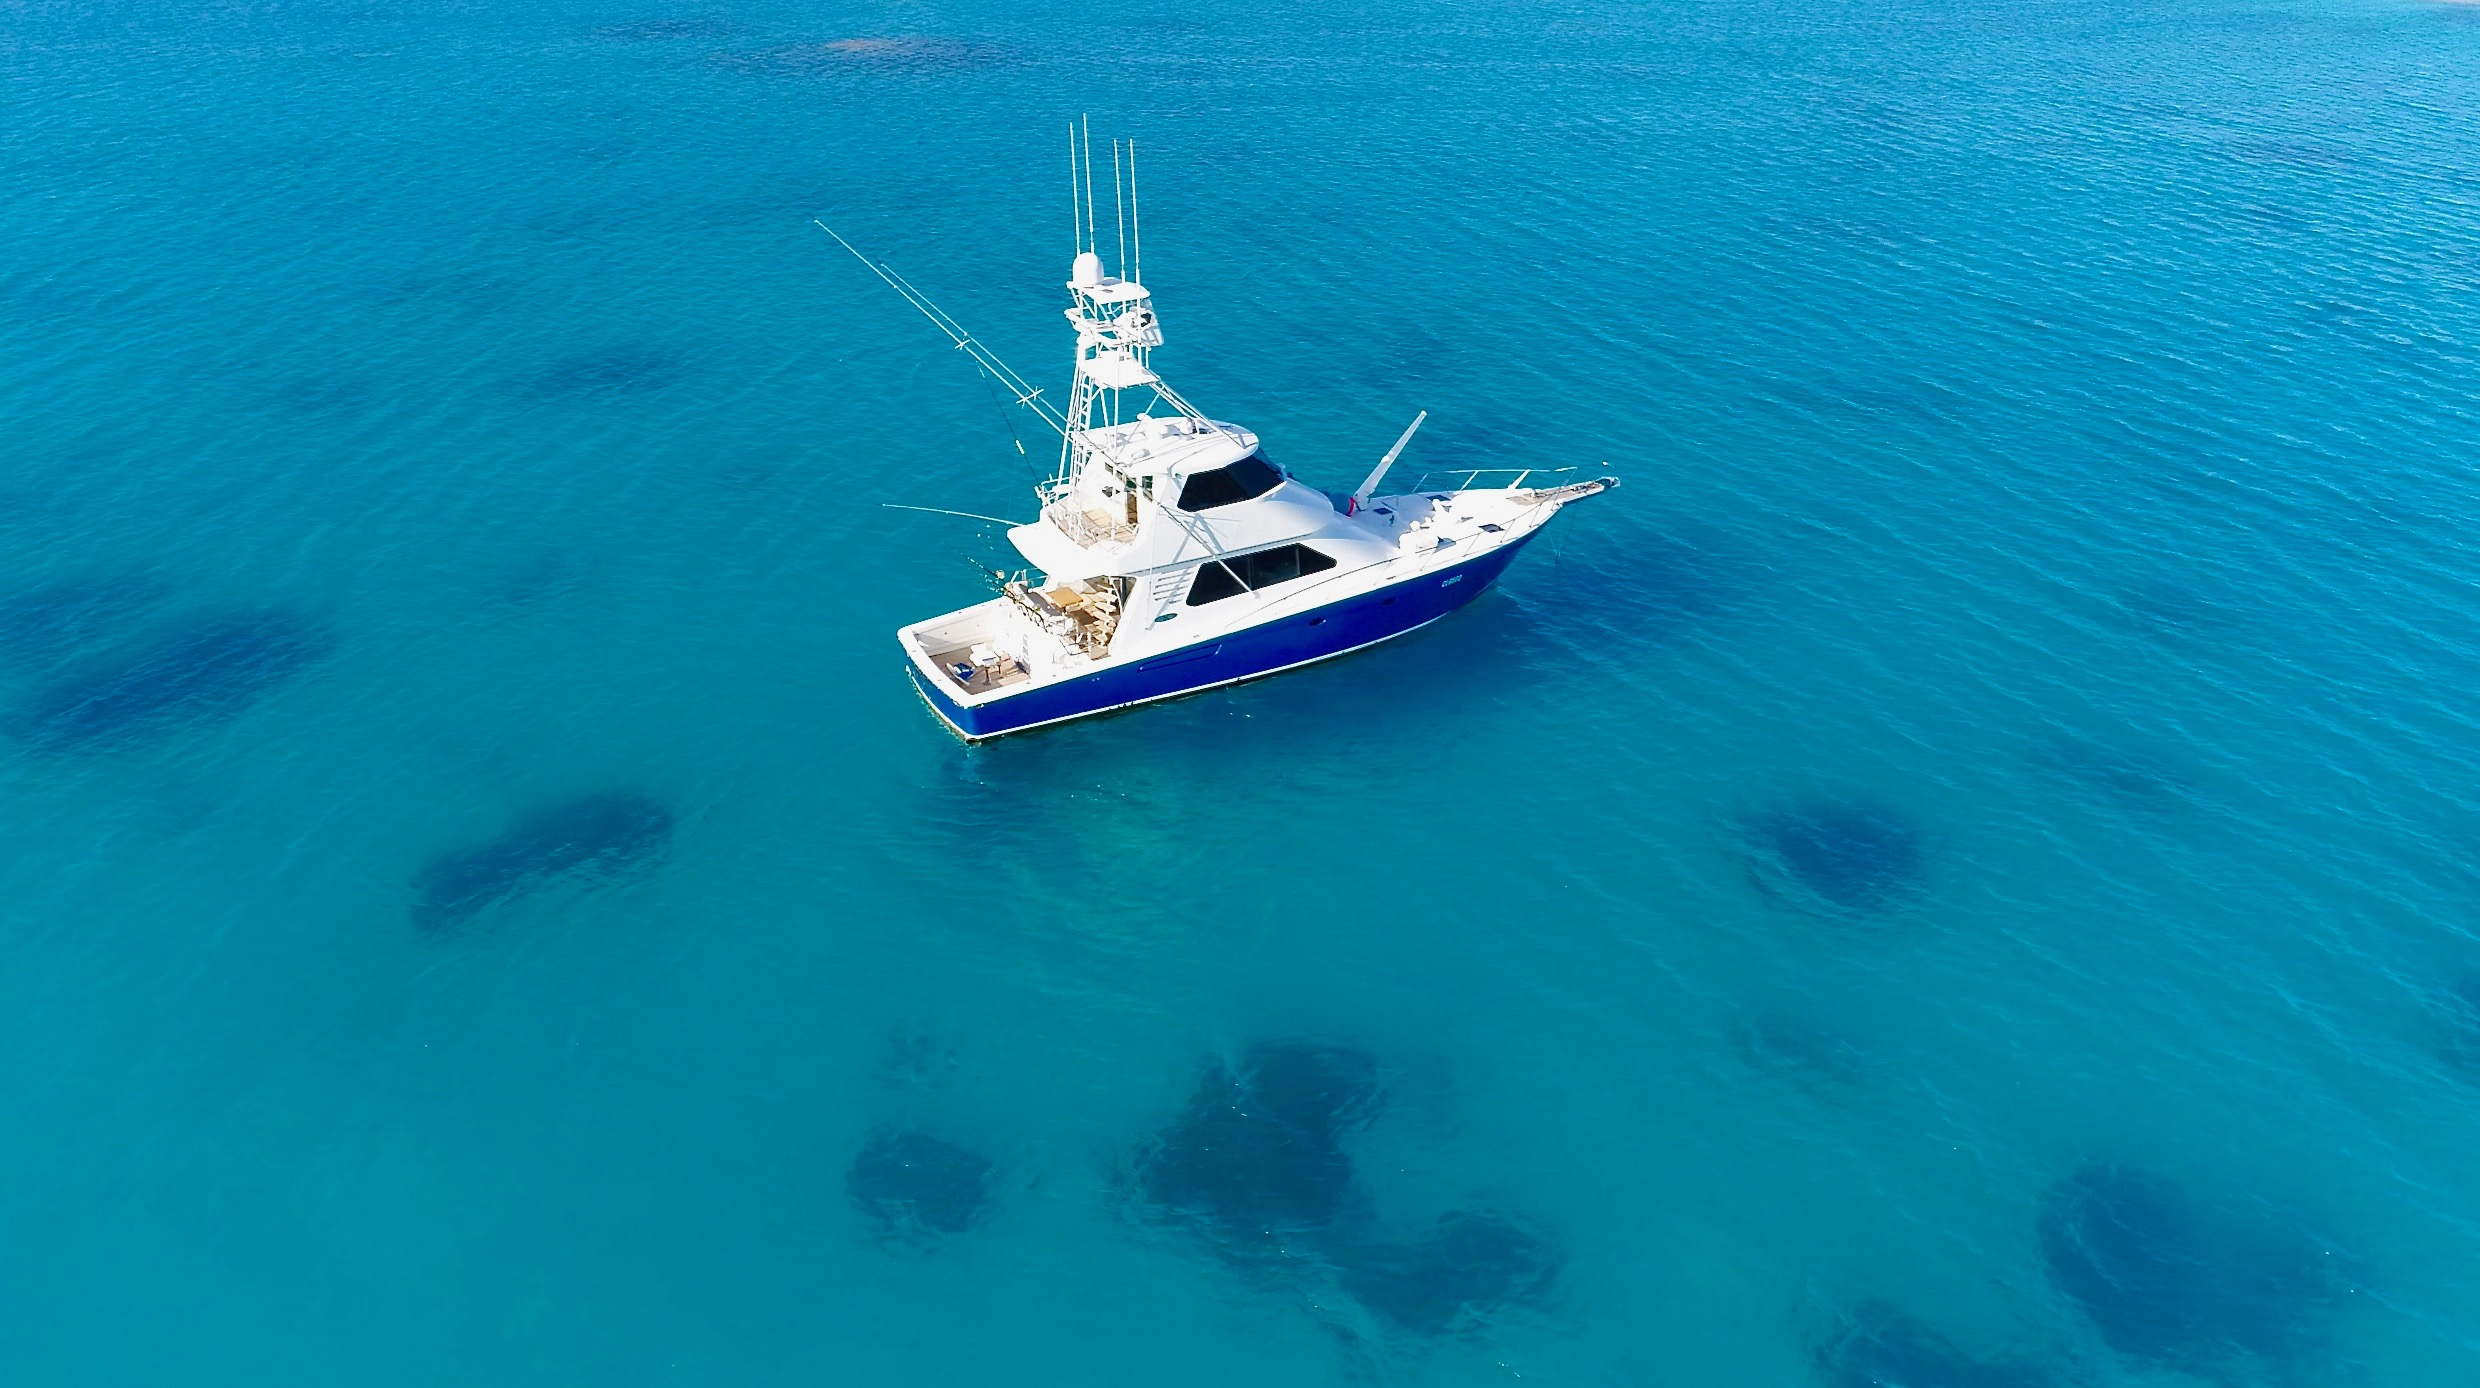 Brilliant Company Topnotch Game Fishing luxury charters airlie Beach whitsundays our destinations